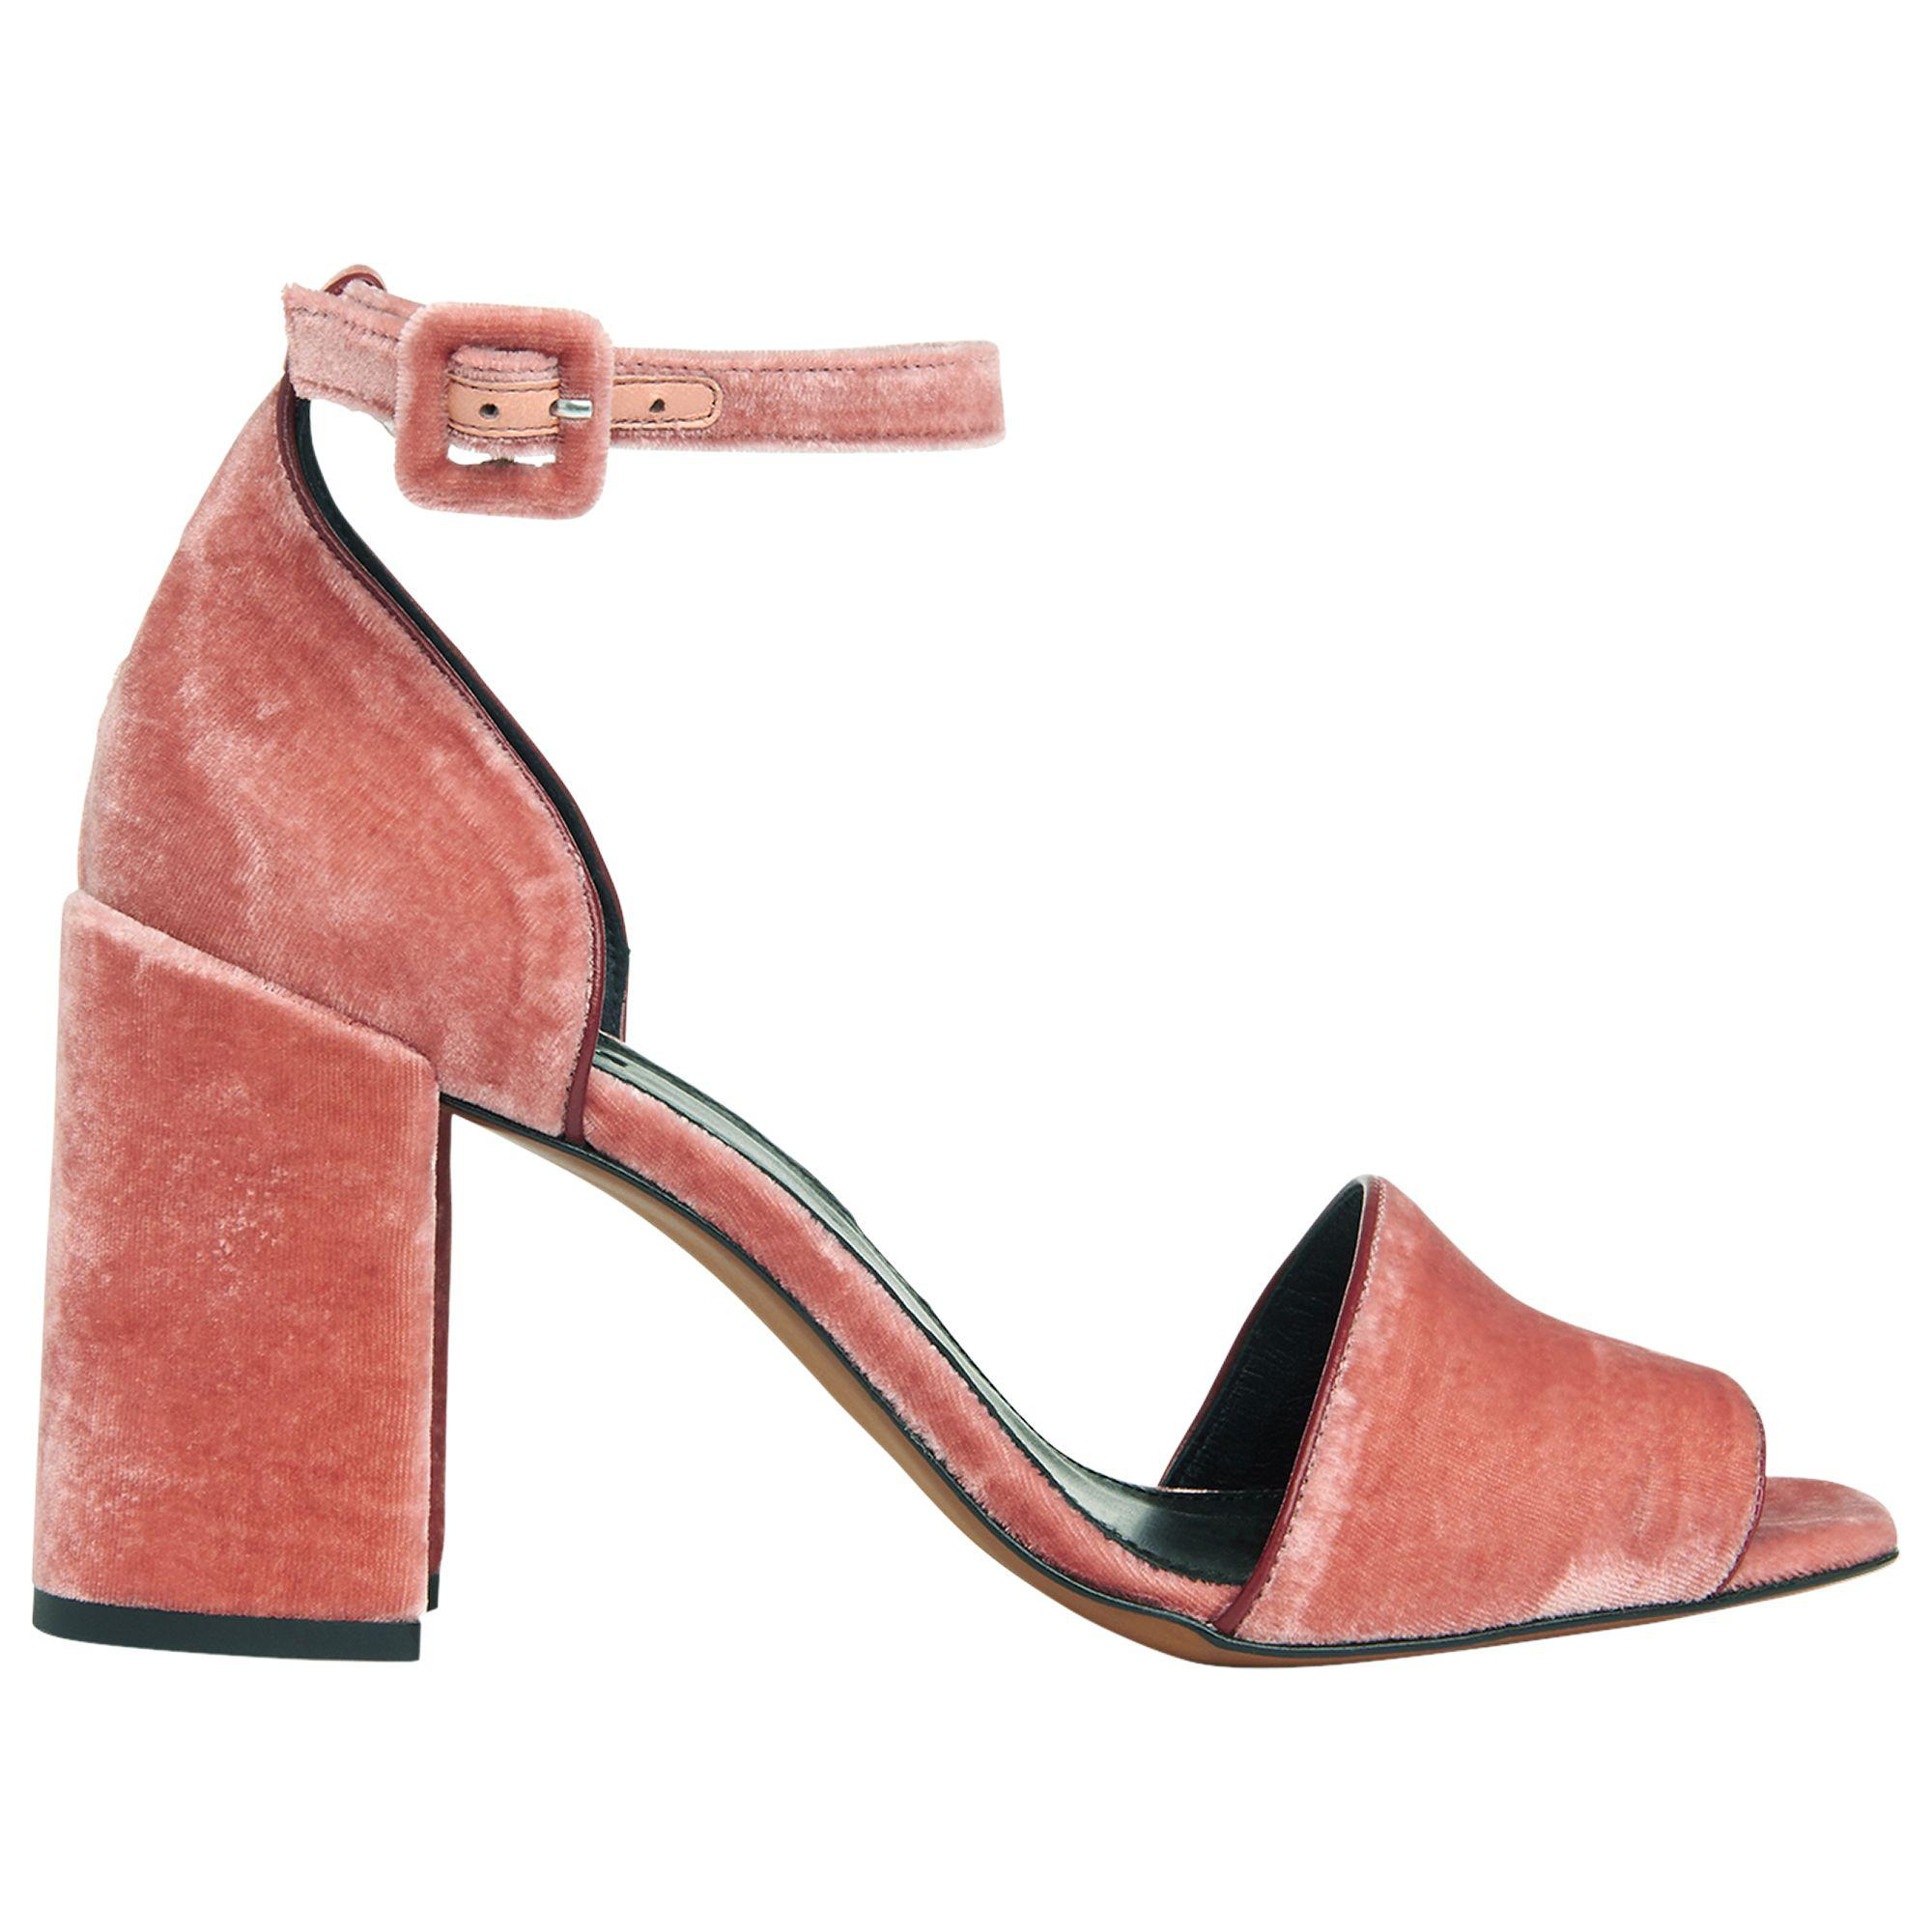 543186e0c65f Whistles. Women s Pink Hedda Velvet Block Heeled Sandals. £169 £69 From John  Lewis and Partners